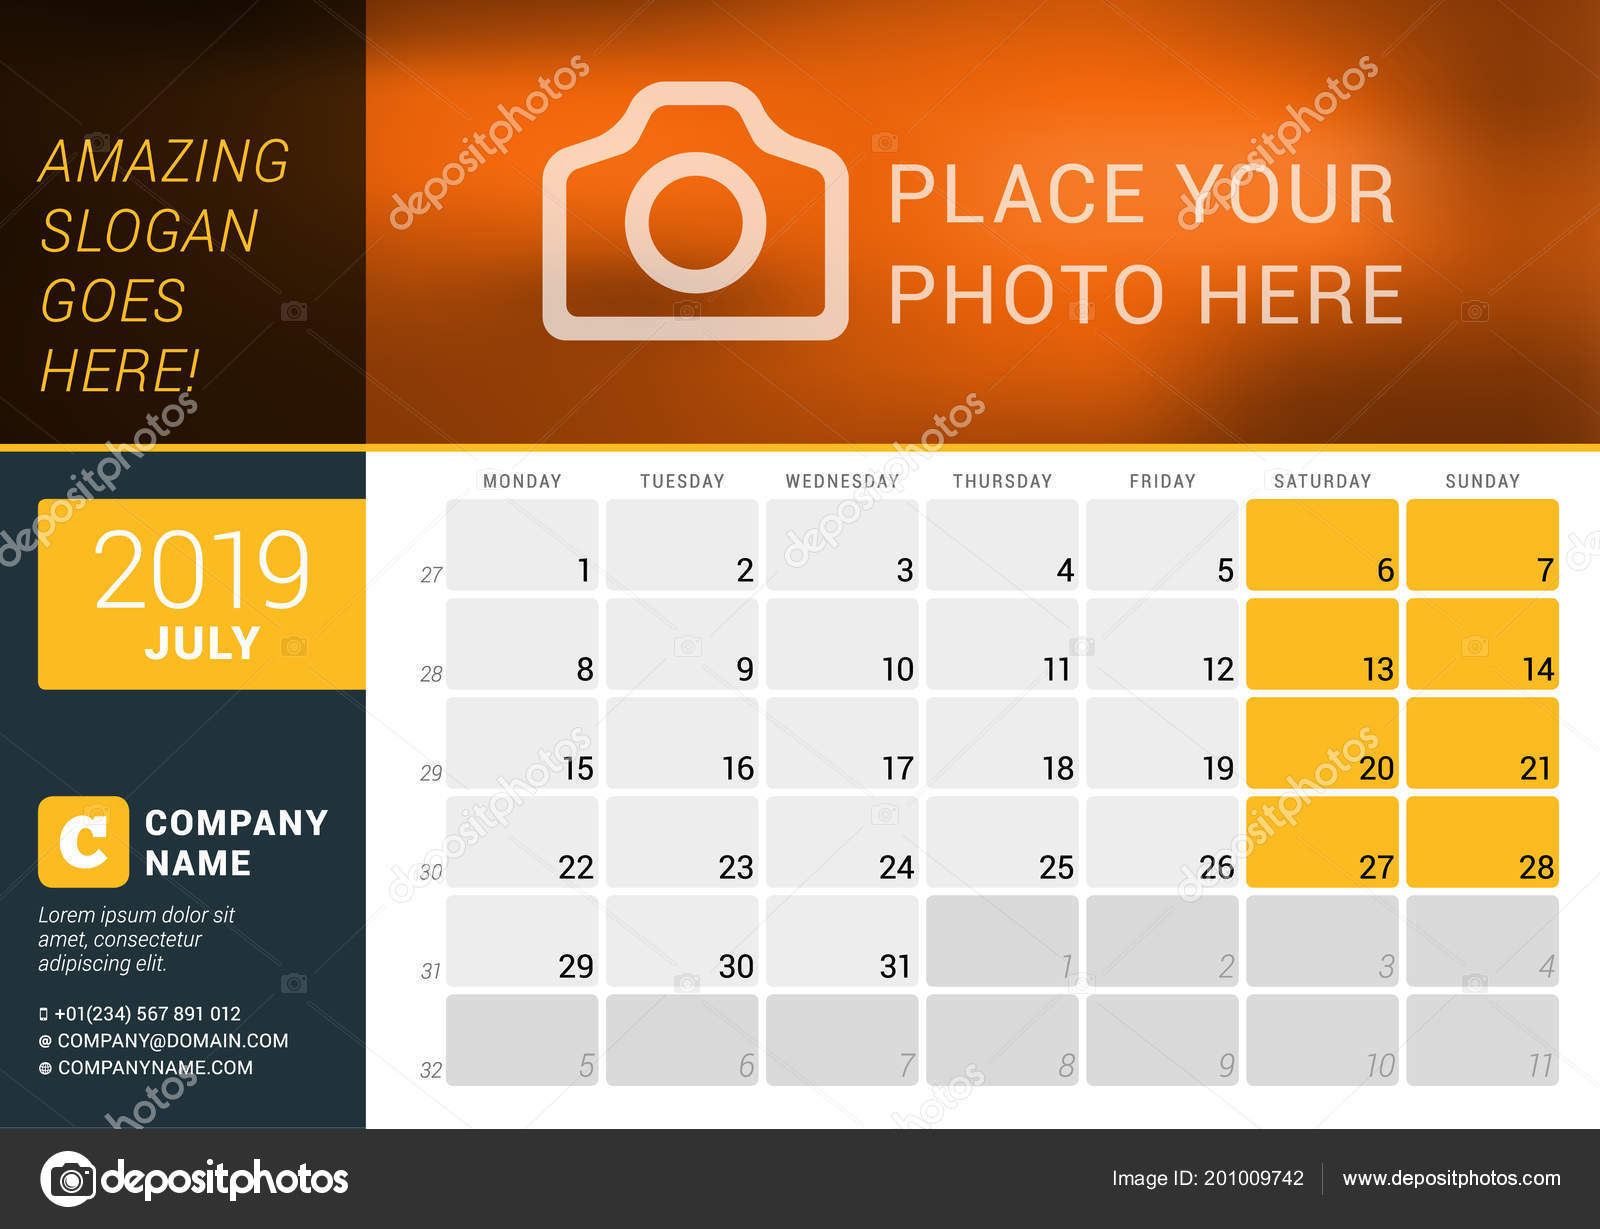 july 2019 desk calendar for 2019 year vector design print template with place for photo logo and contact information week starts on monday